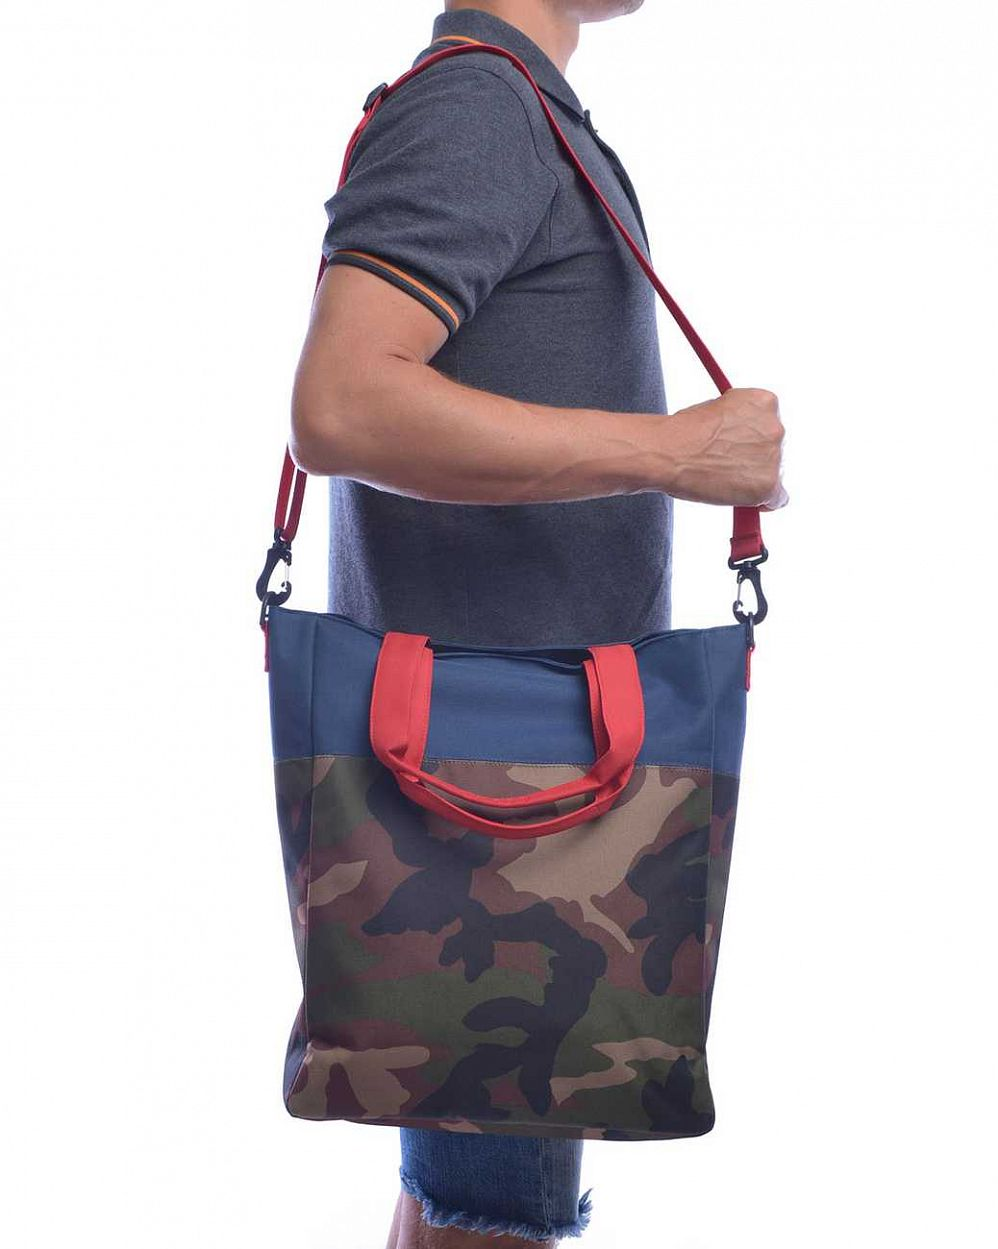 Сумка Herschel Pier Woodland Camo Navy Red отзывы